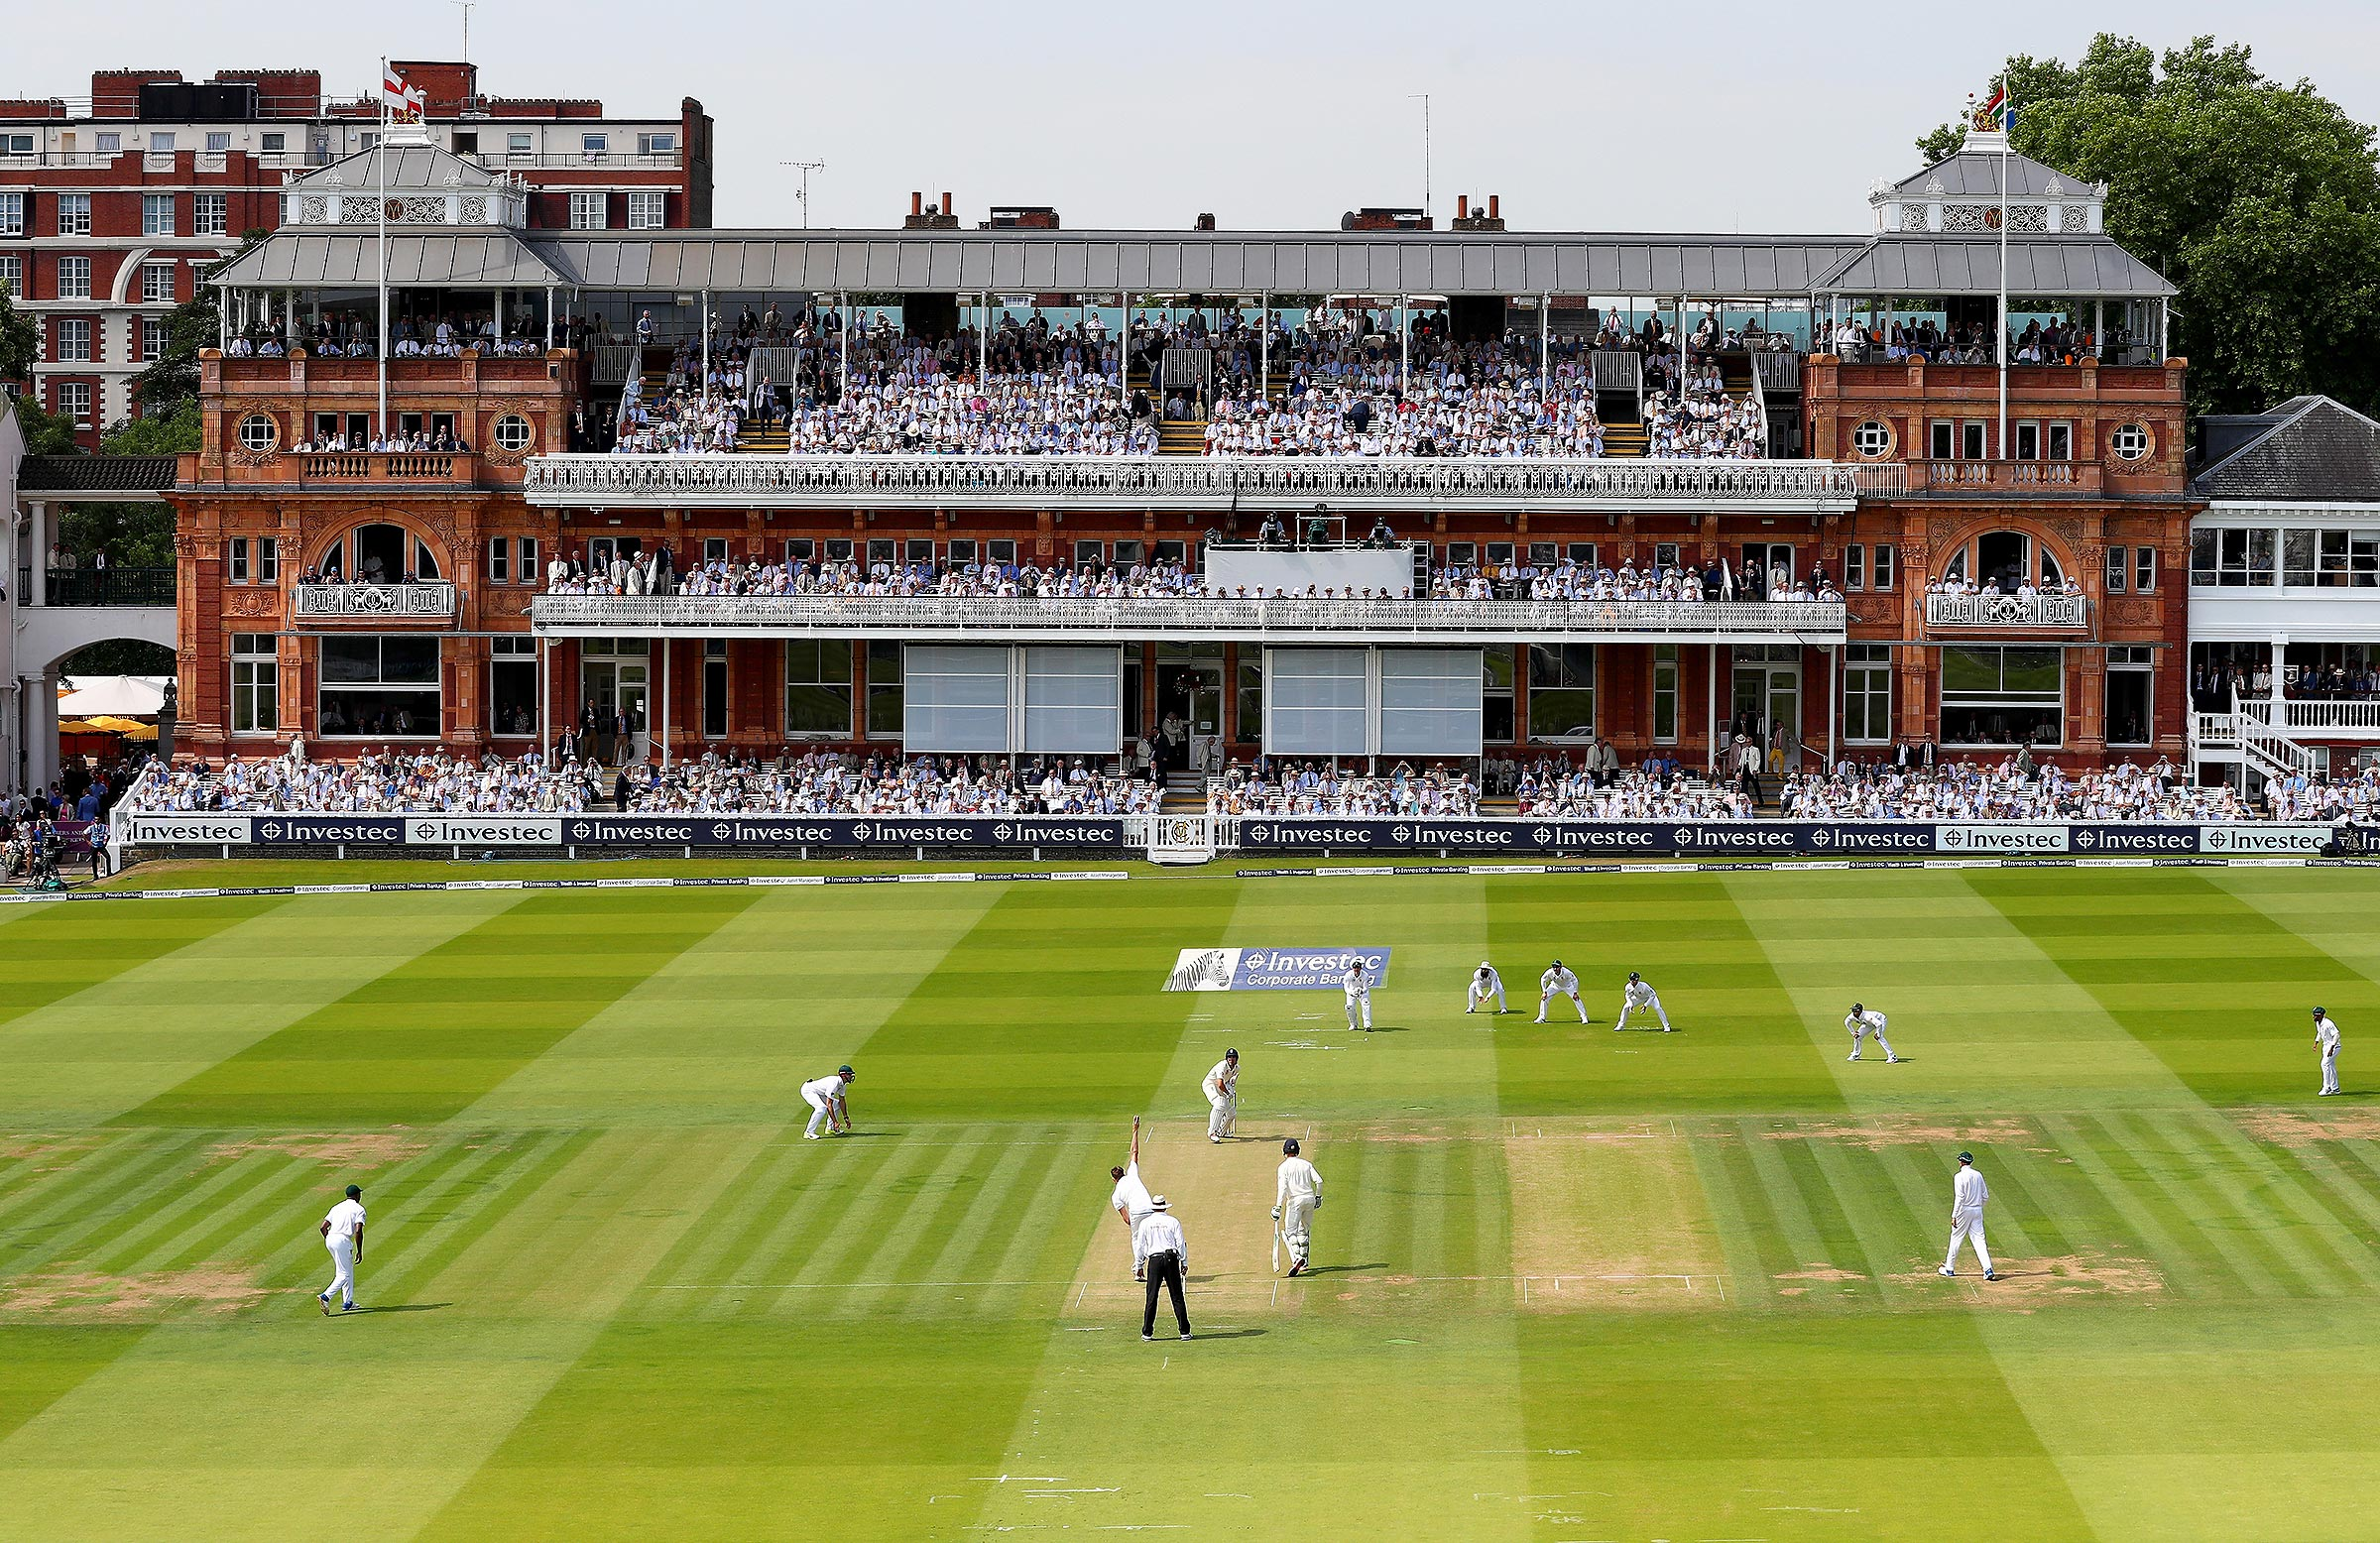 The WTC final is set to be at Lord's in June 2021 // Getty